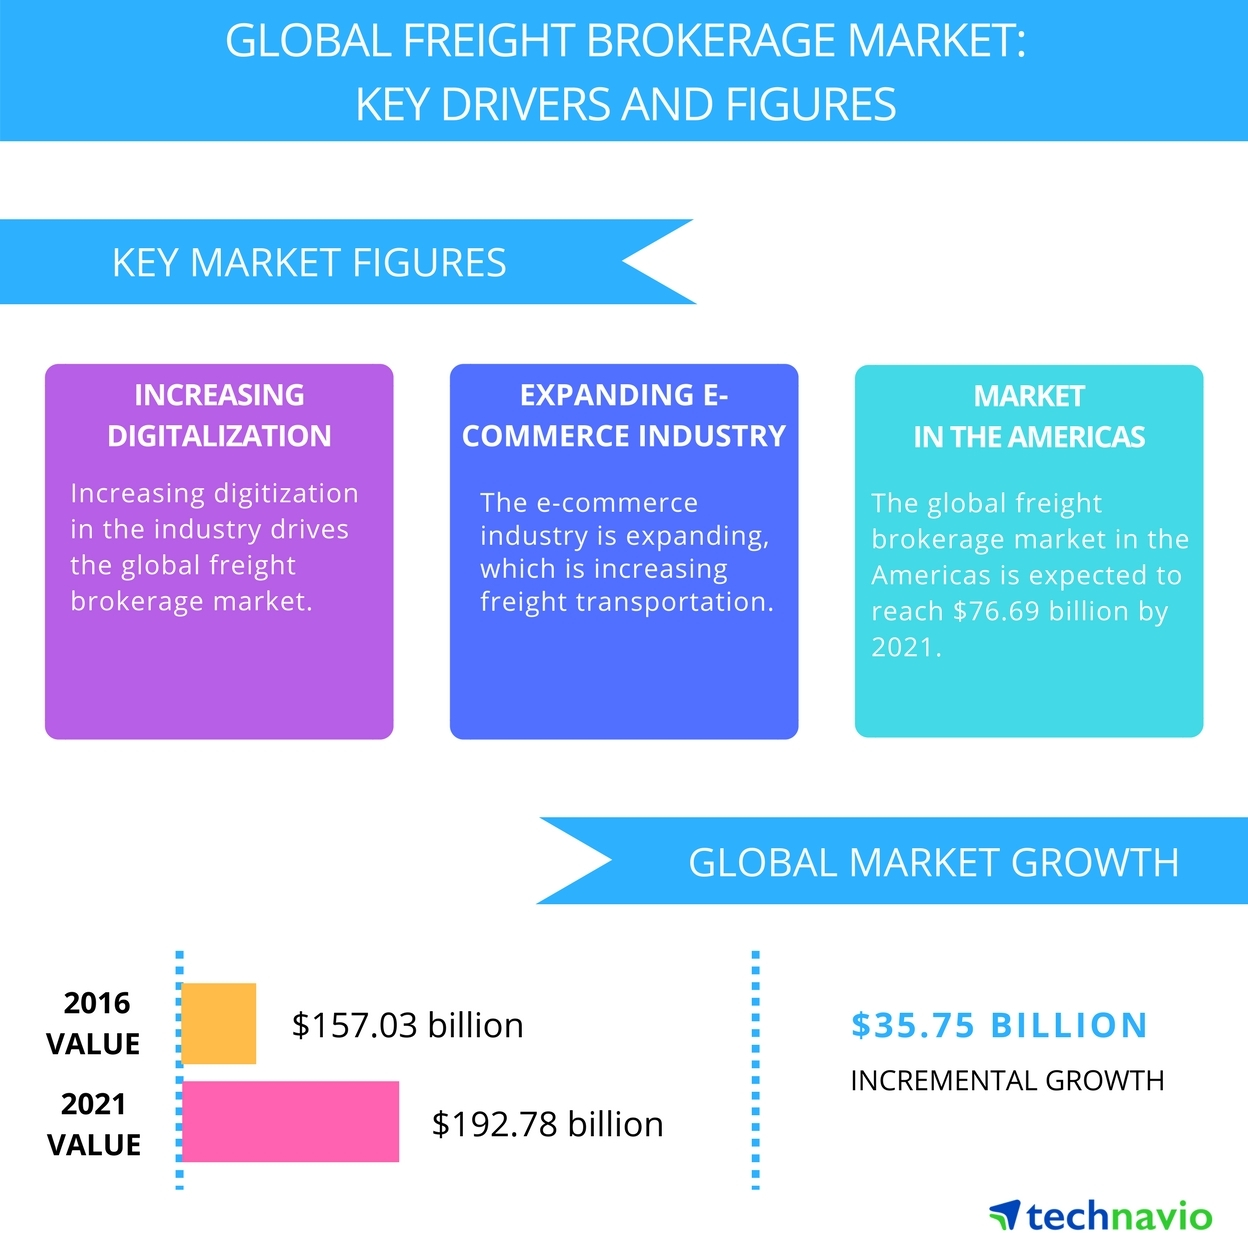 Global Freight Brokerage Market 2017 2021 Top Drivers And Forecasts By Technavio Business Wire